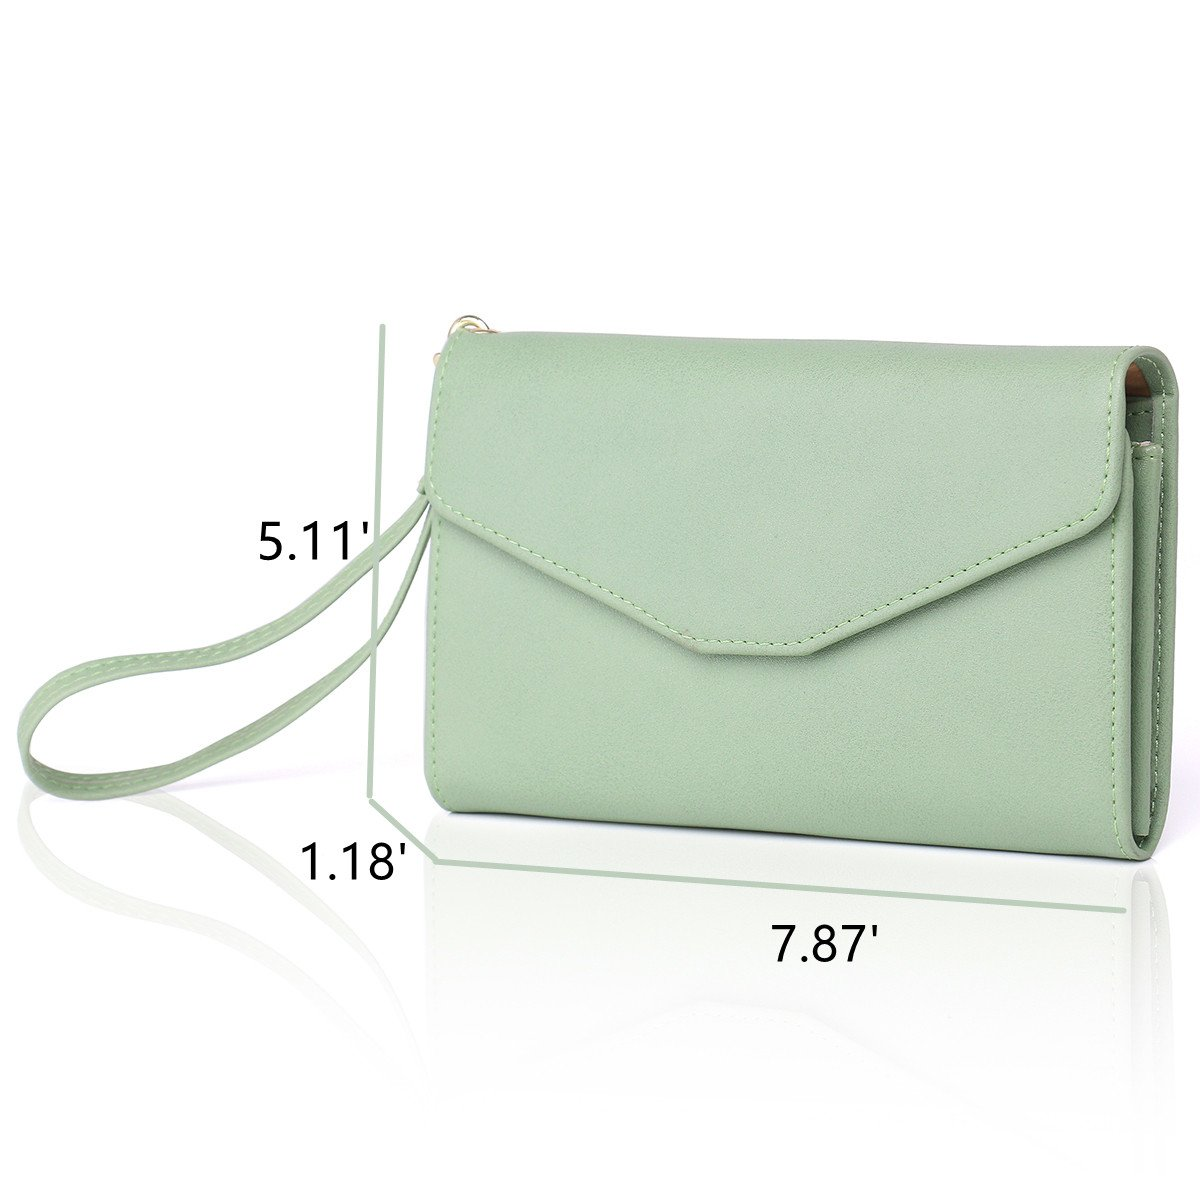 Zg Wristlets for Women, Cell Phone Clutch Wallet, Passport Wallet, All In One Purse Extra Capacity by Zg gift (Image #6)